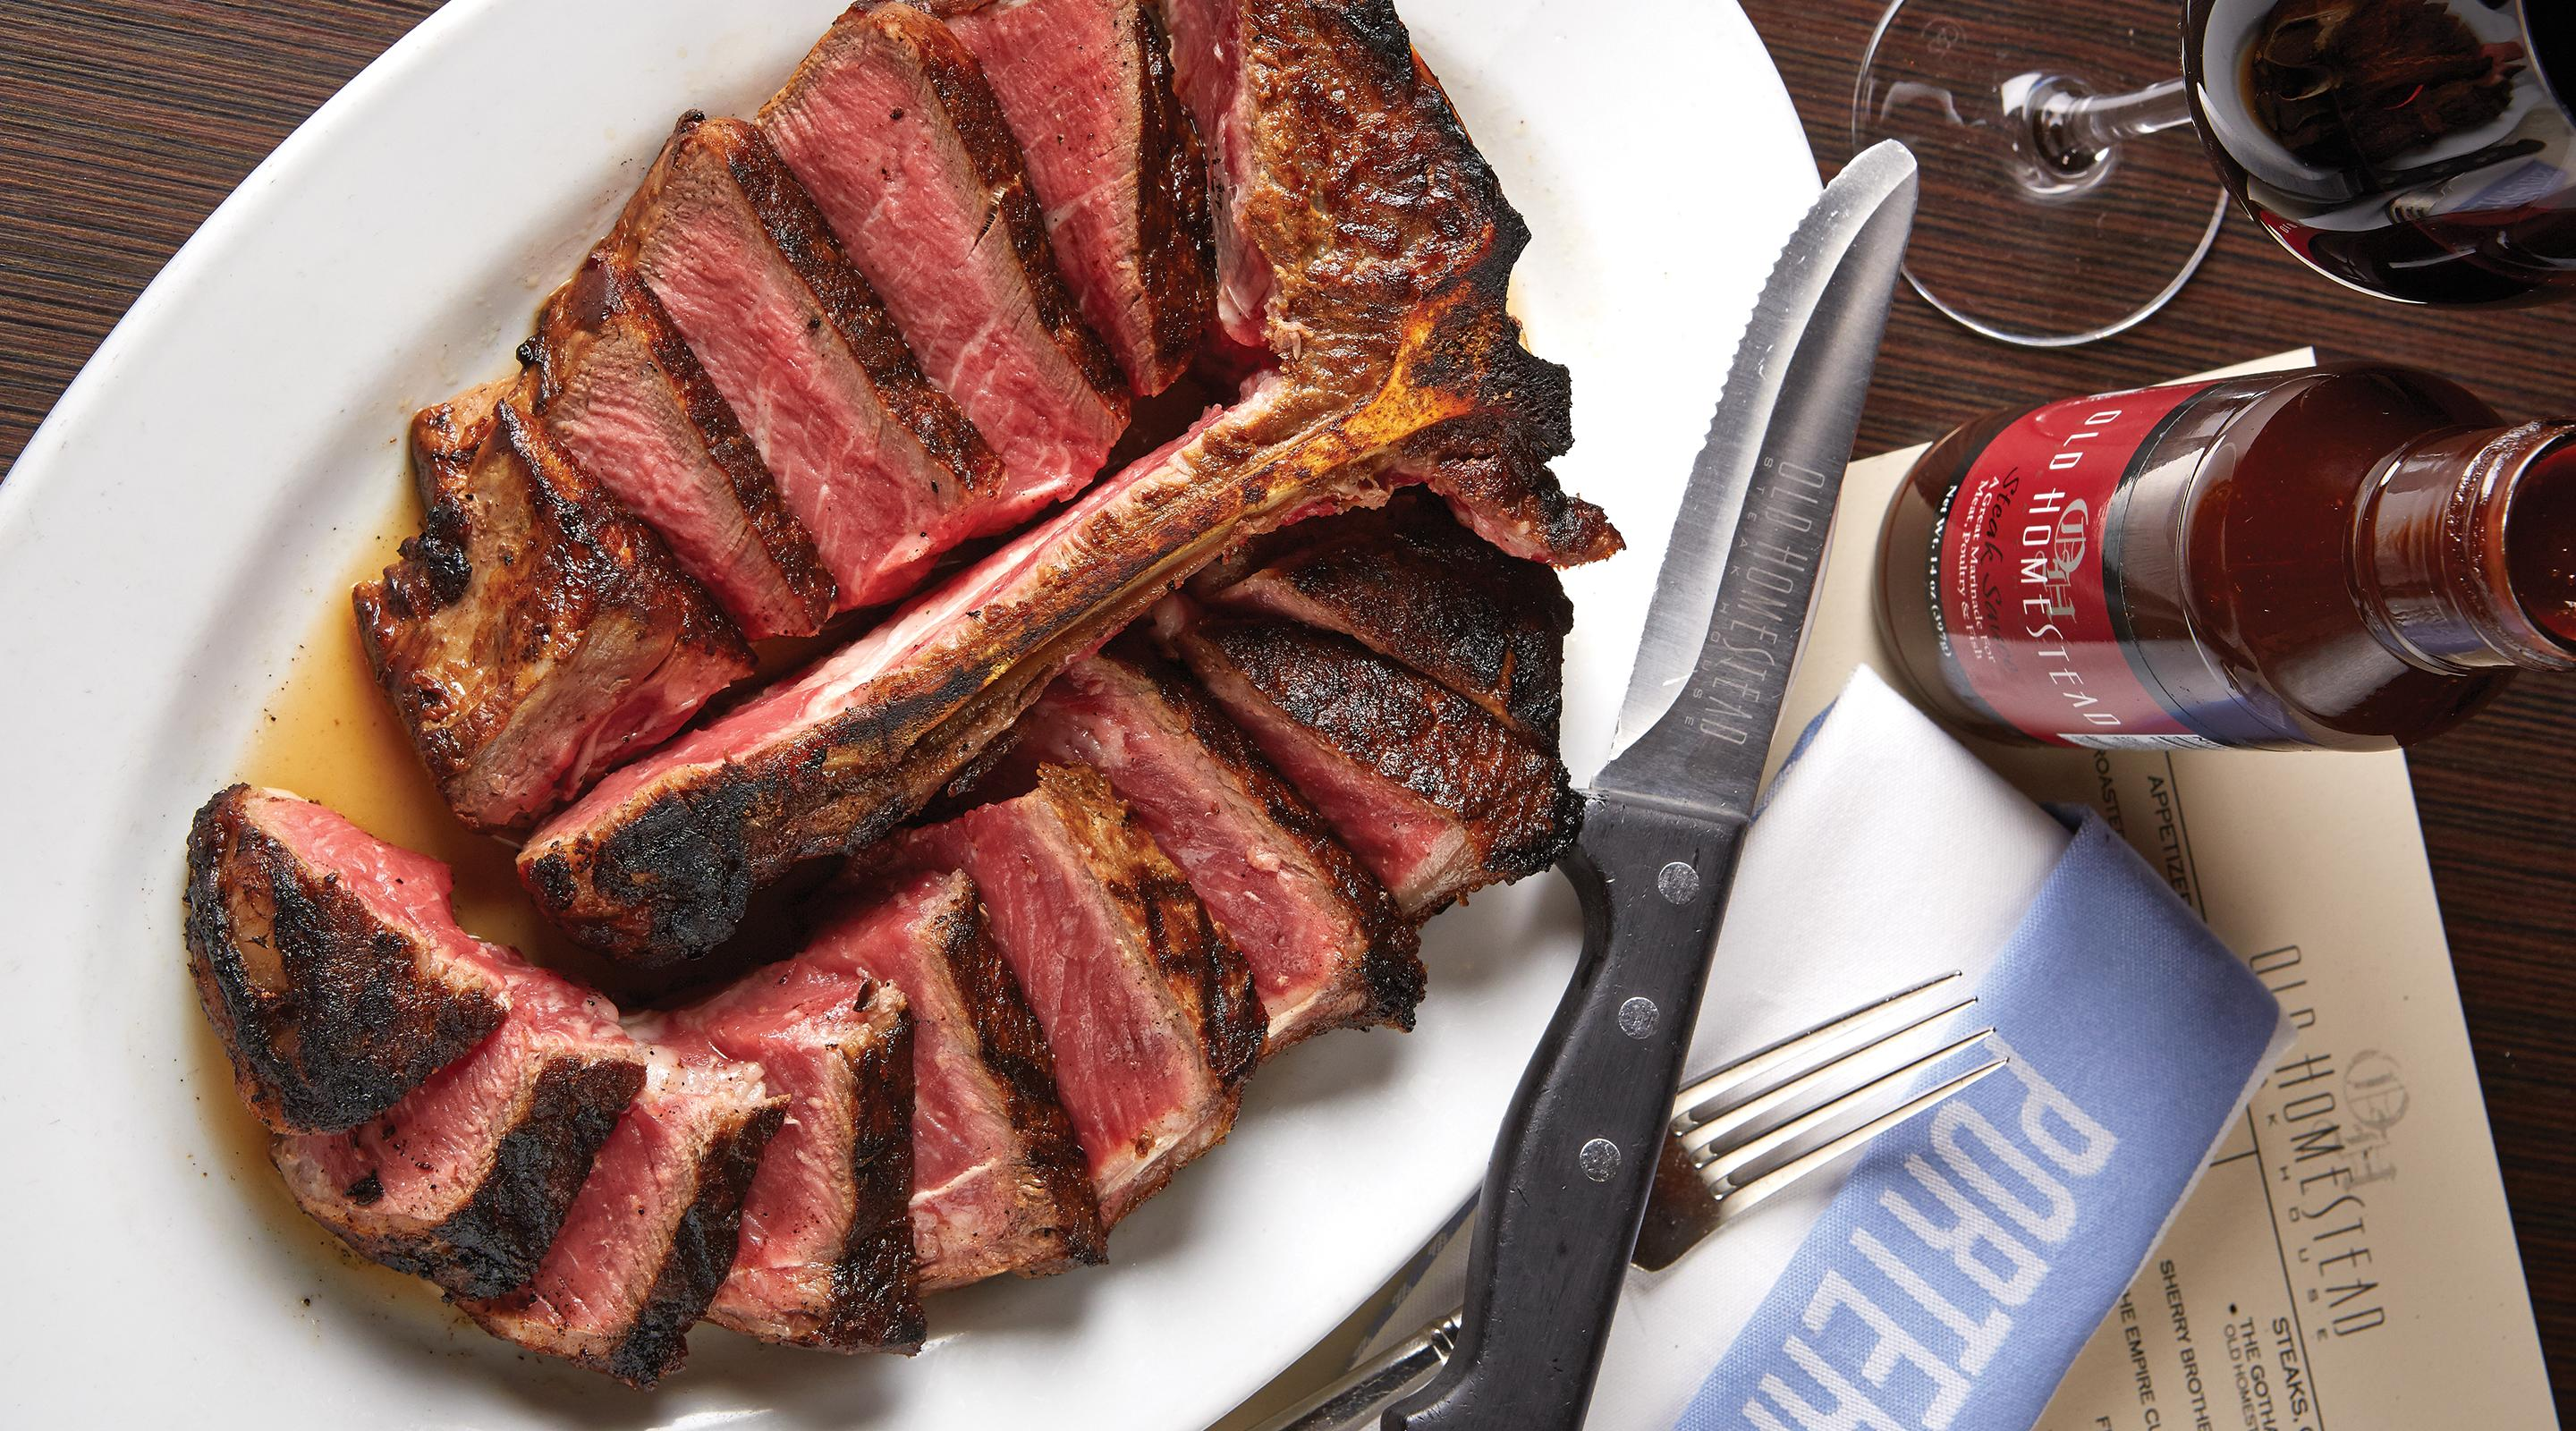 Porterhouse steak for two with sauce and a glass of red wine.